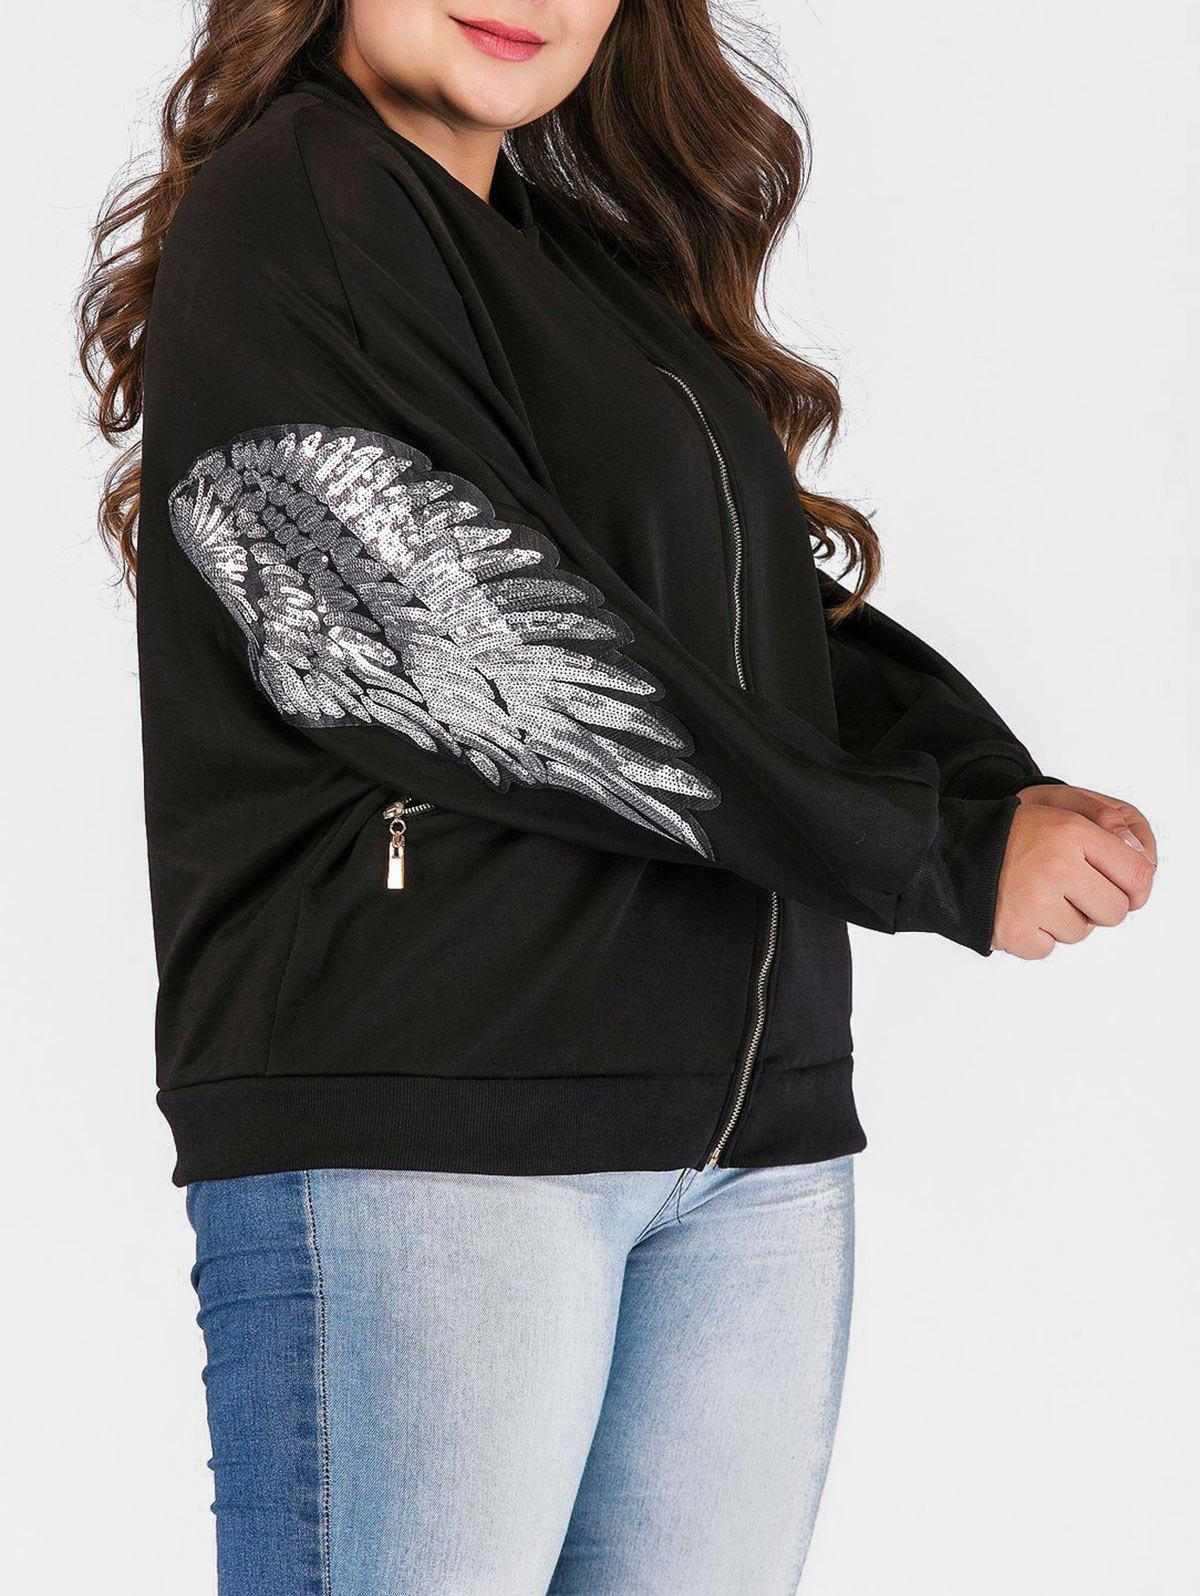 New Plus Size Zipper Fly Jacket with Sequines